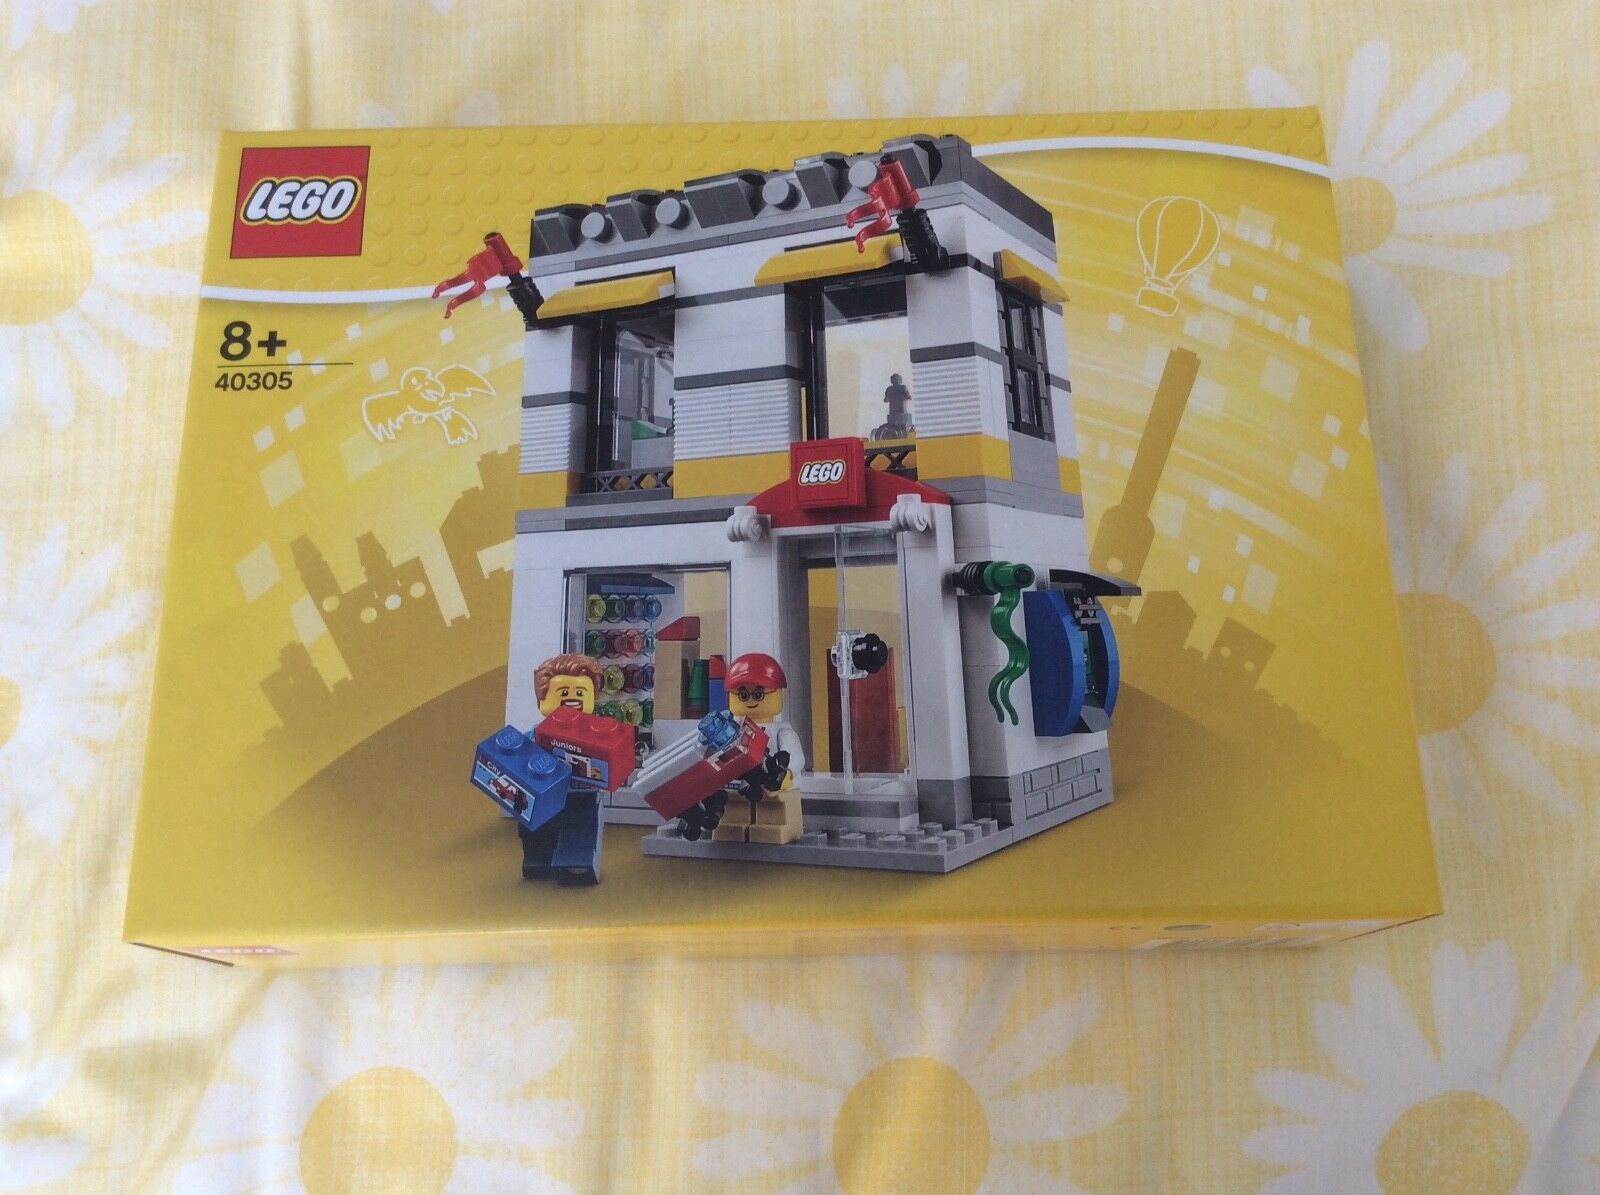 BRAND NEW EXCLUSIVE Lego Brand Retail Store set 40305